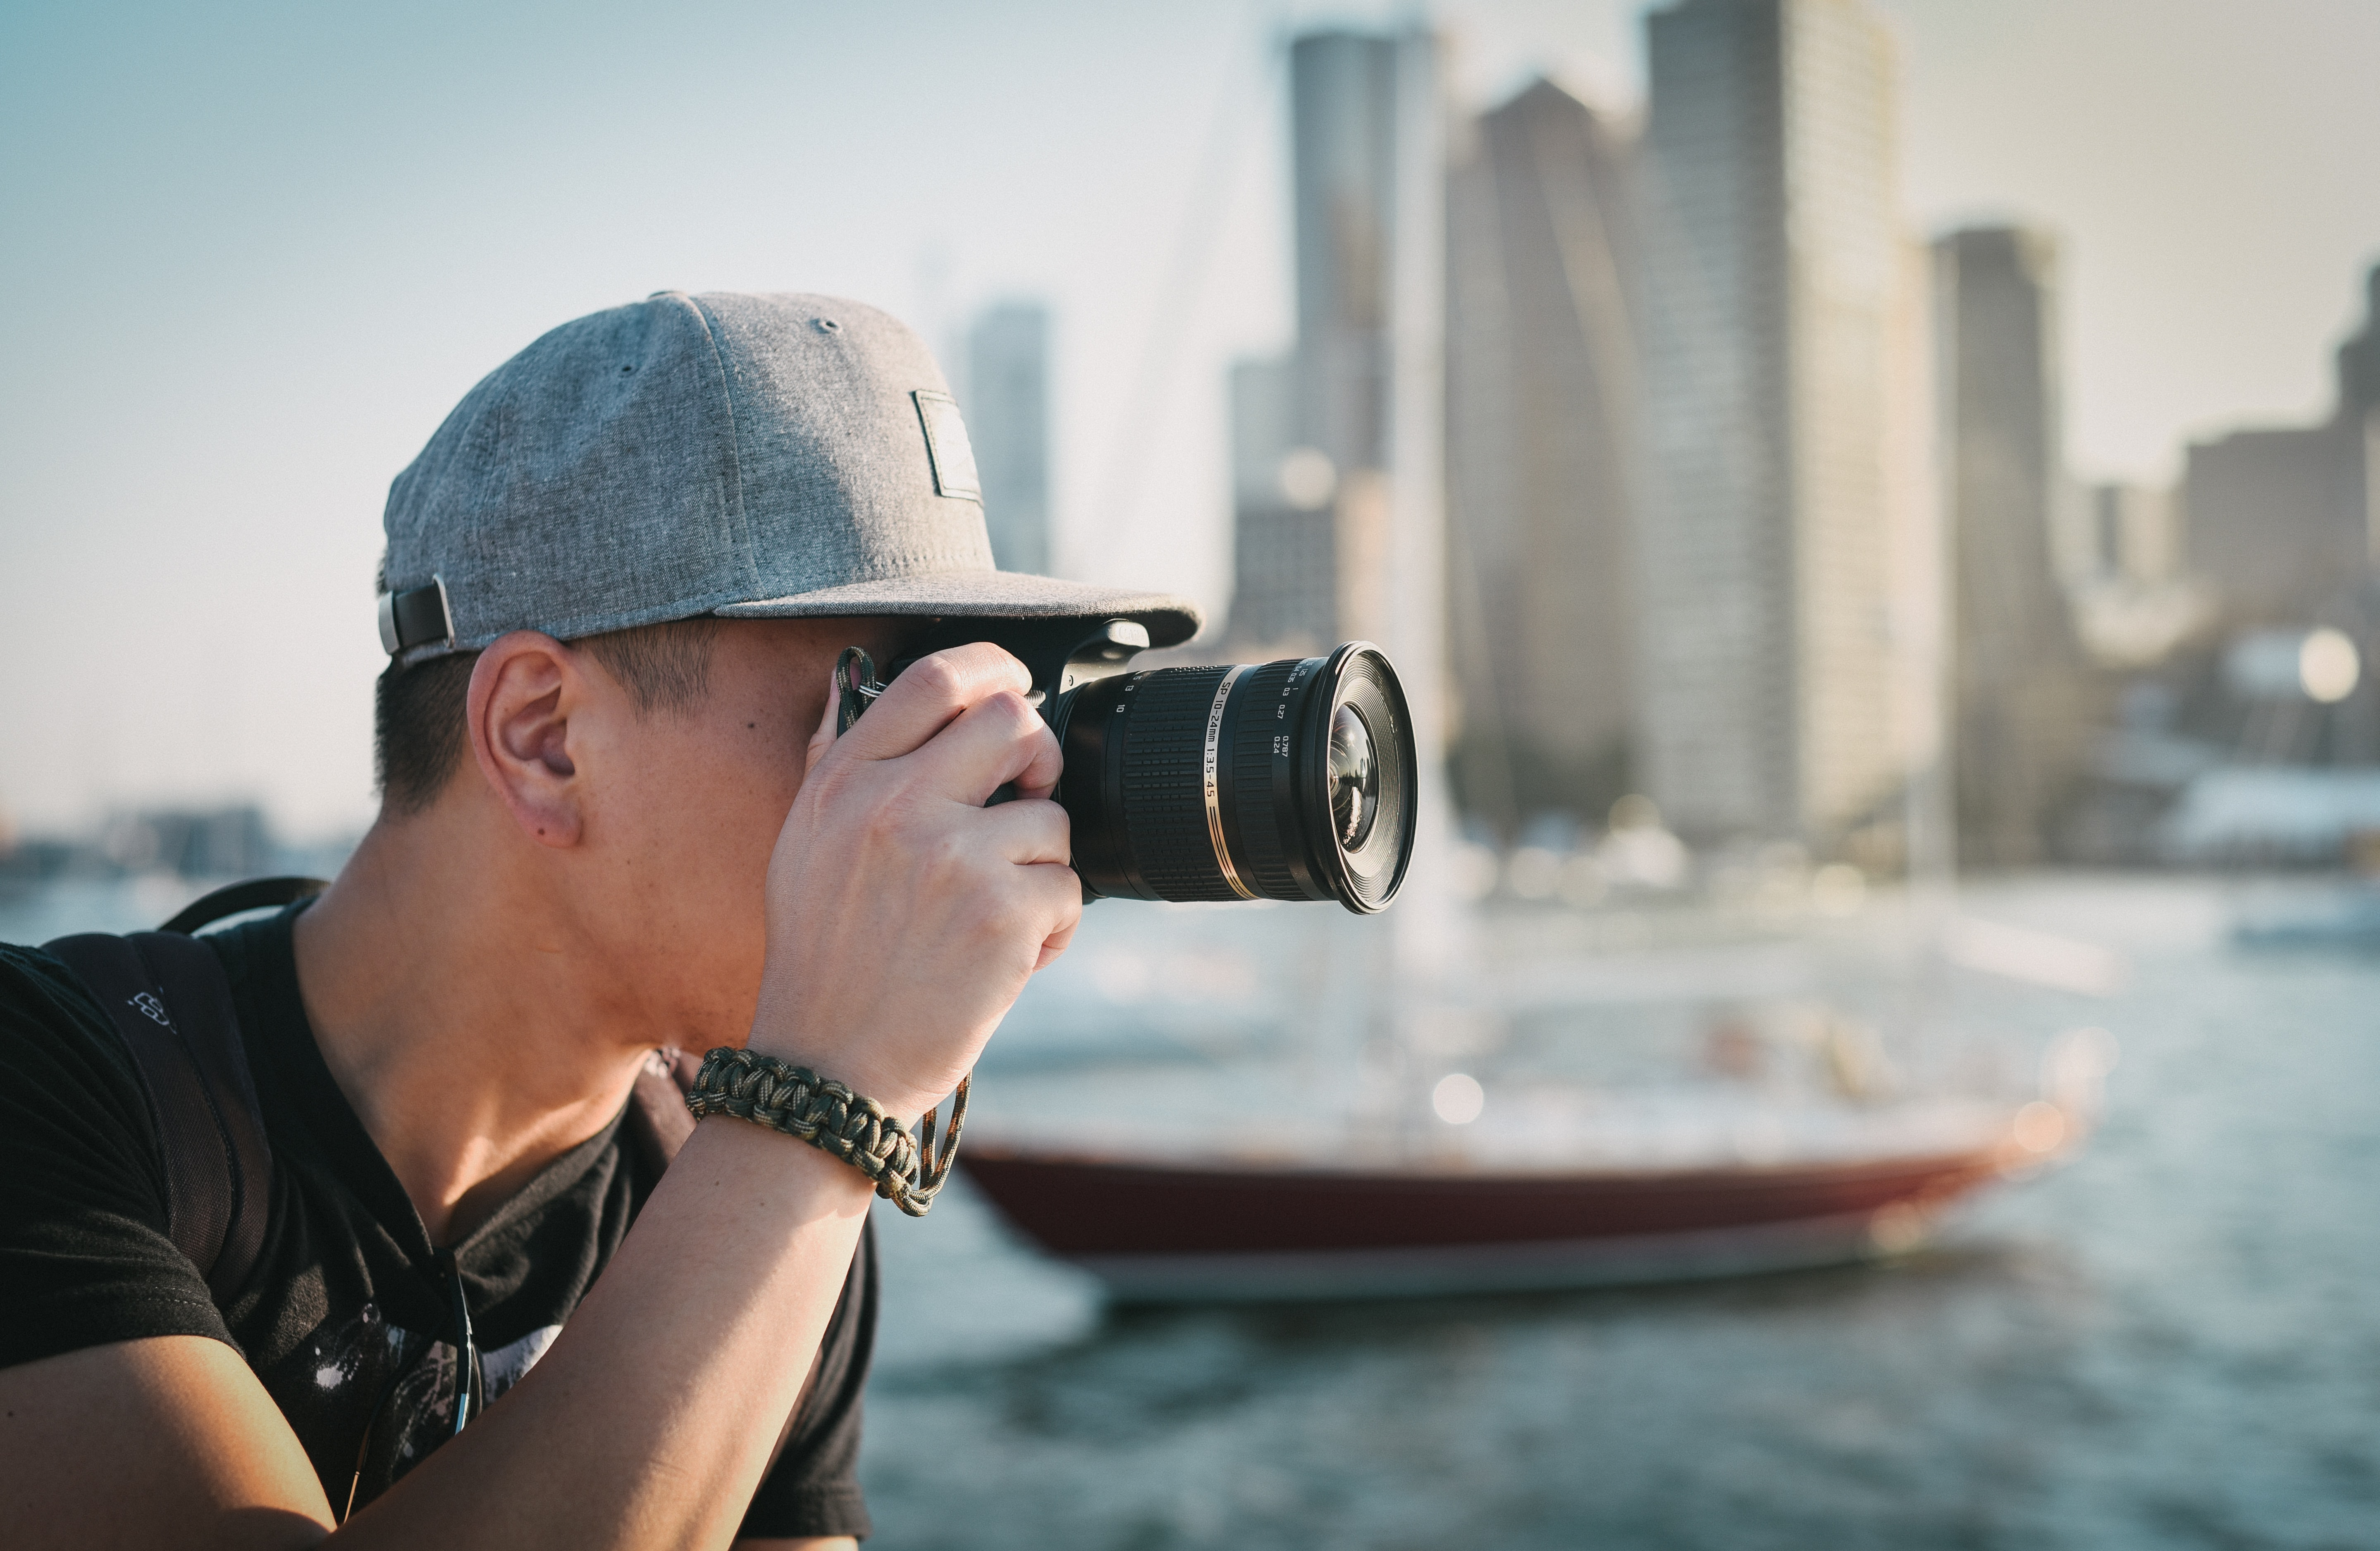 A man wearing a cap and holding a camera with buildings and a boat beside him